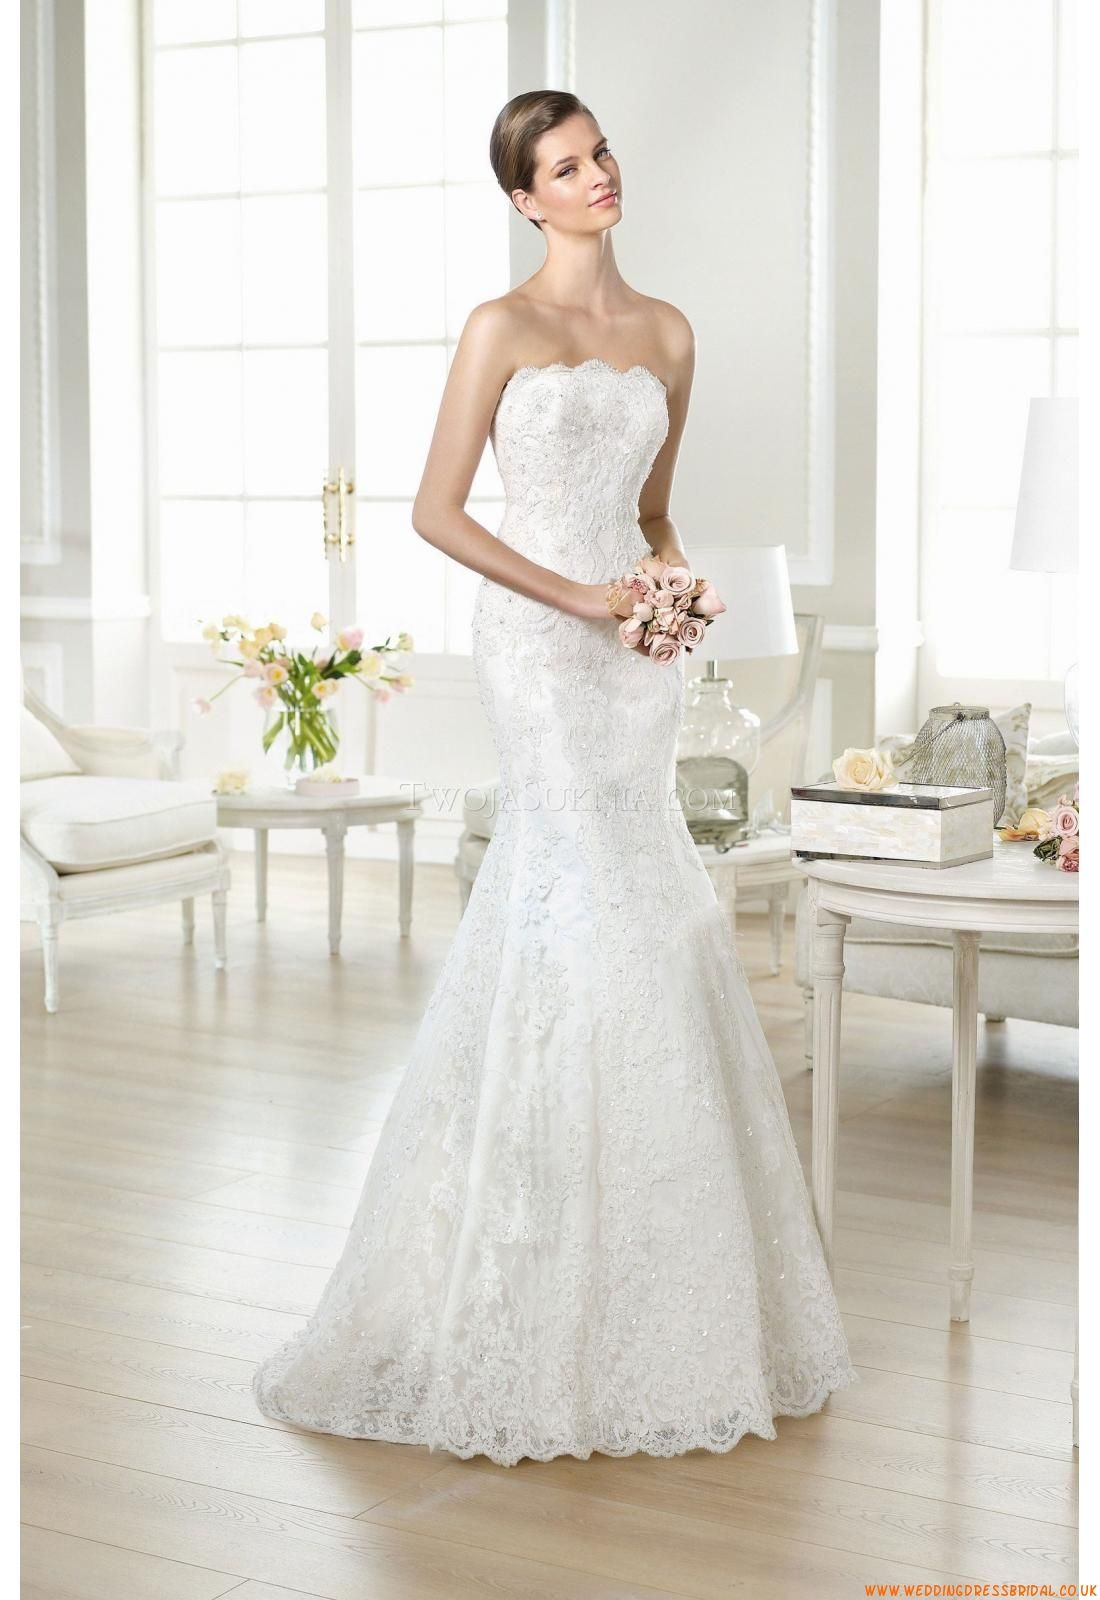 Wedding dresses white one tamara wedding dresses pinterest